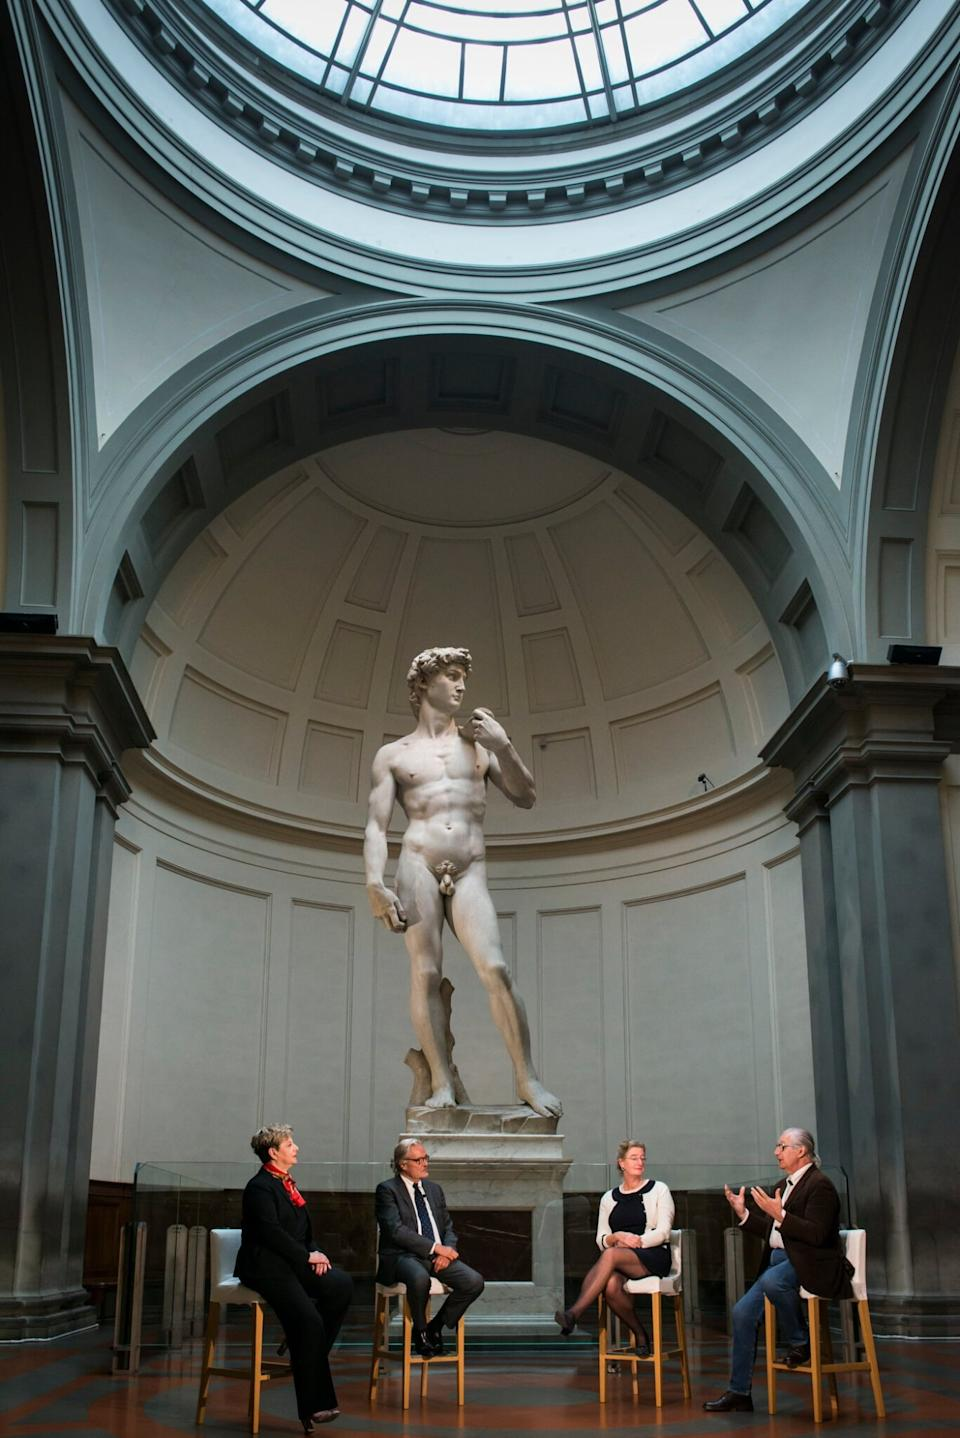 Staff members from the University of Florence discuss the process of digitally recreating Michelangelo's iconic